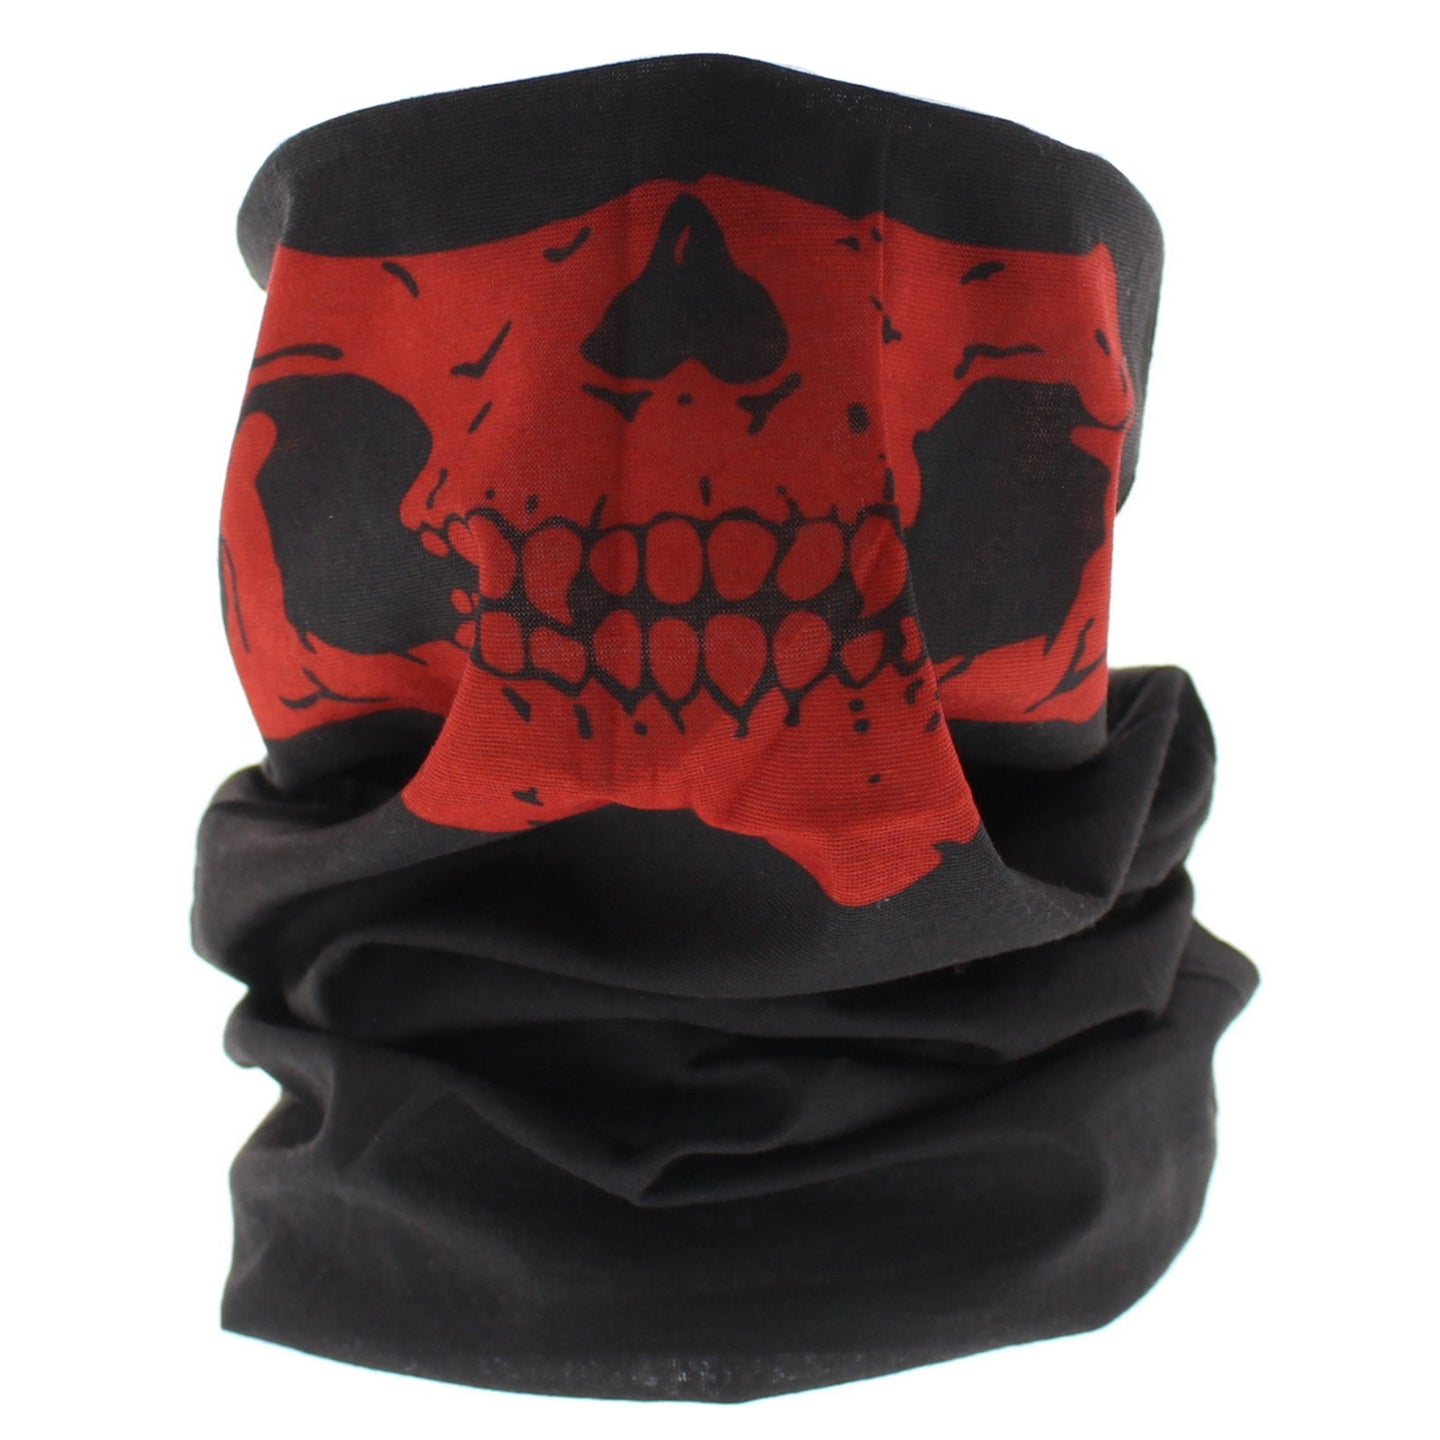 Black+Red Skeleton Mouth Snood/Face Covering